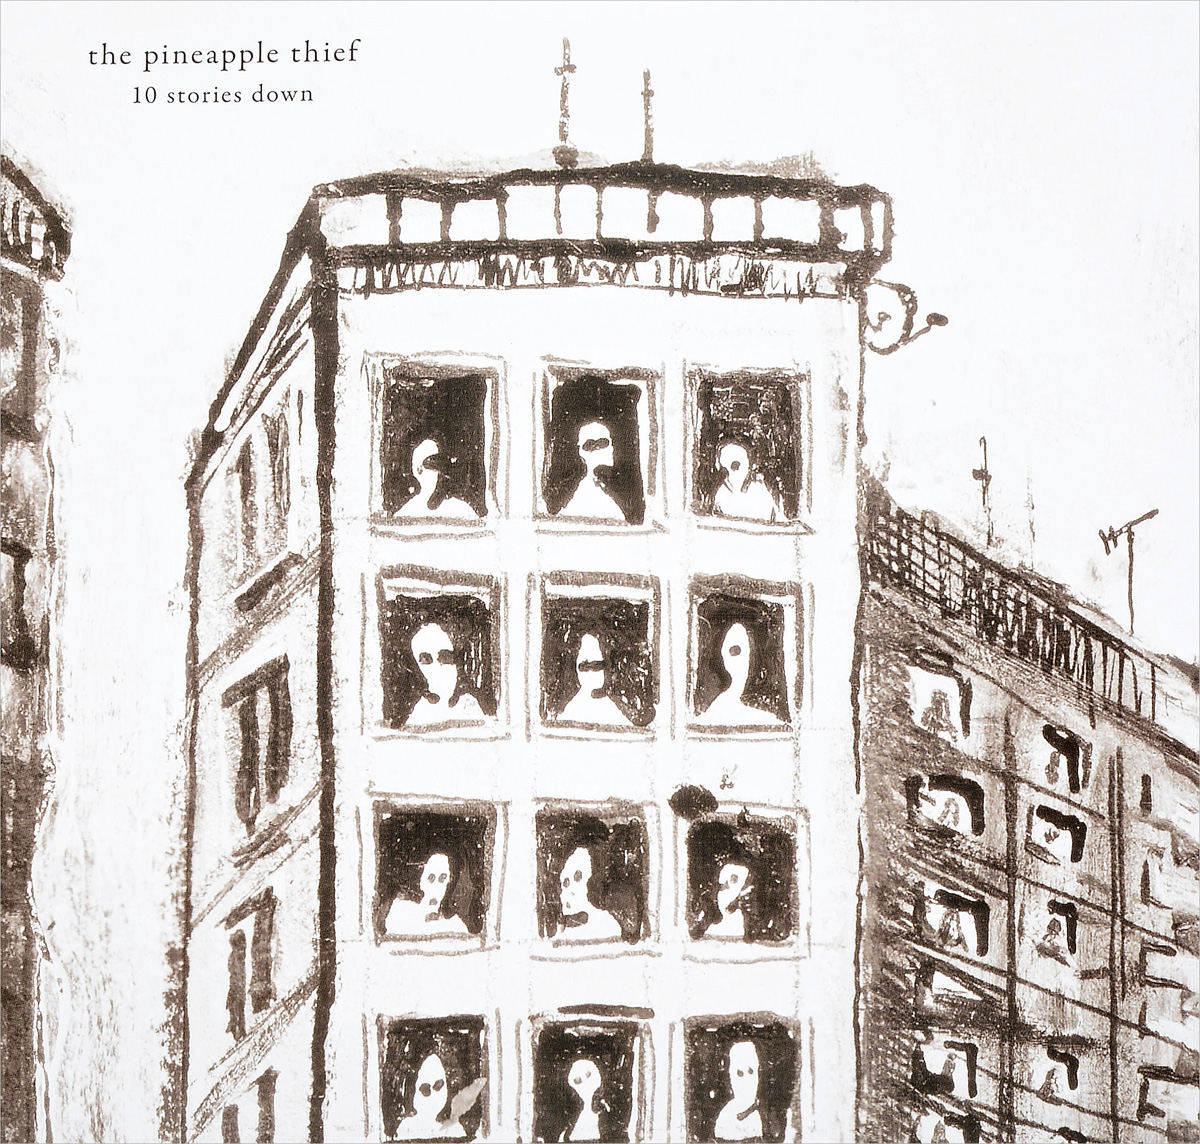 The Pineapple Thief The Pineapple Thief. 10 Stories Down (2 LP) pineapple shaped keychain